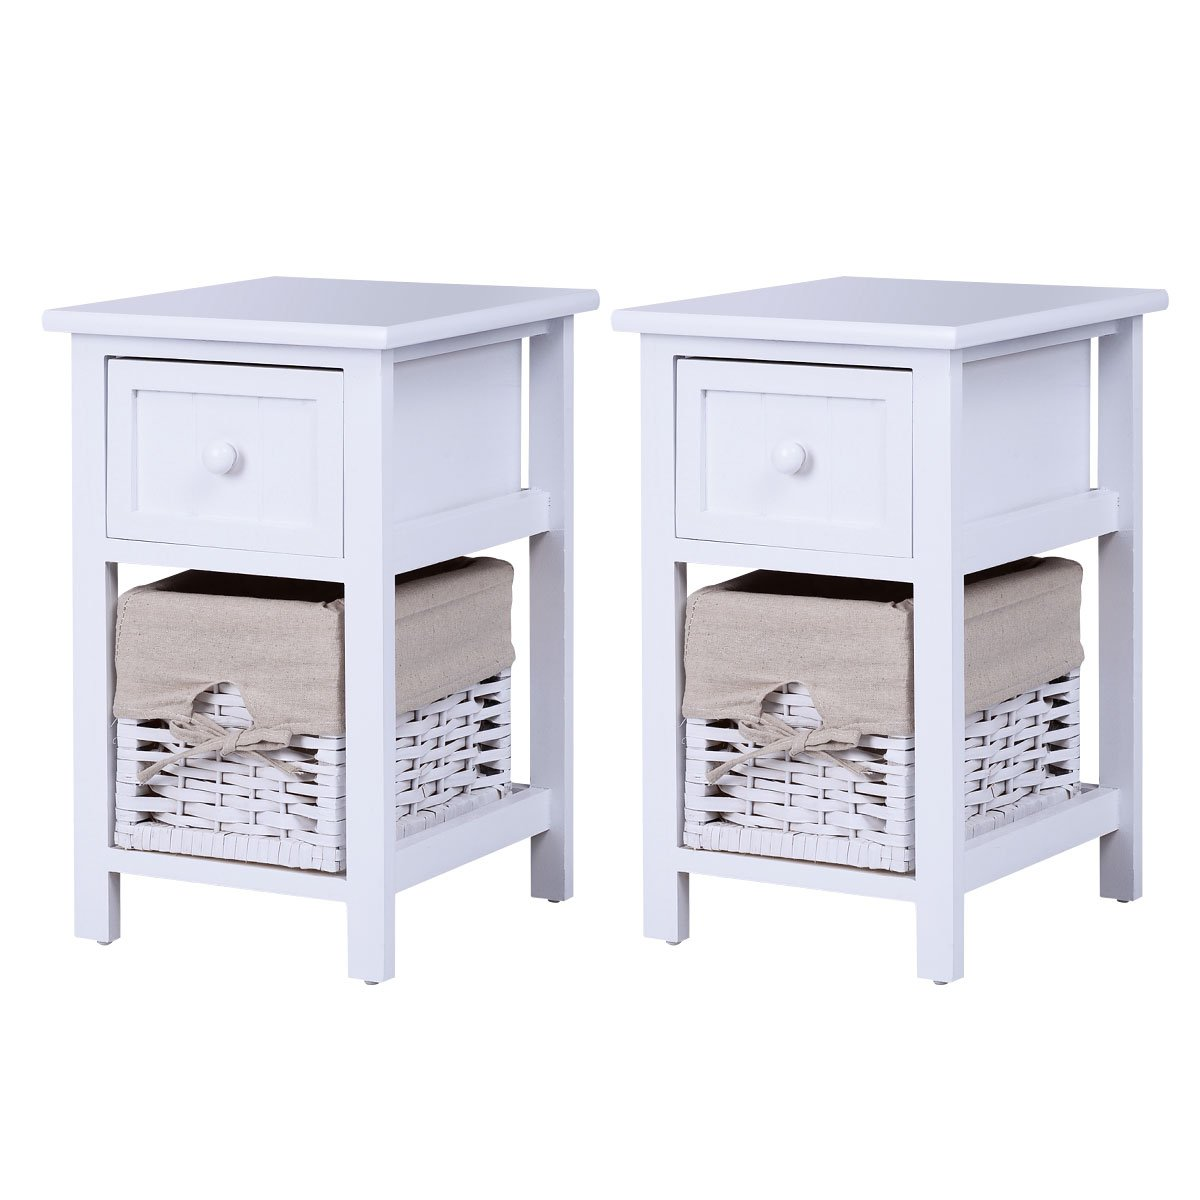 Giantex 2Pcs 2 Tier Nightstand Bedroom End Table Bedside Organizer Wood with Drawer & Basket, White